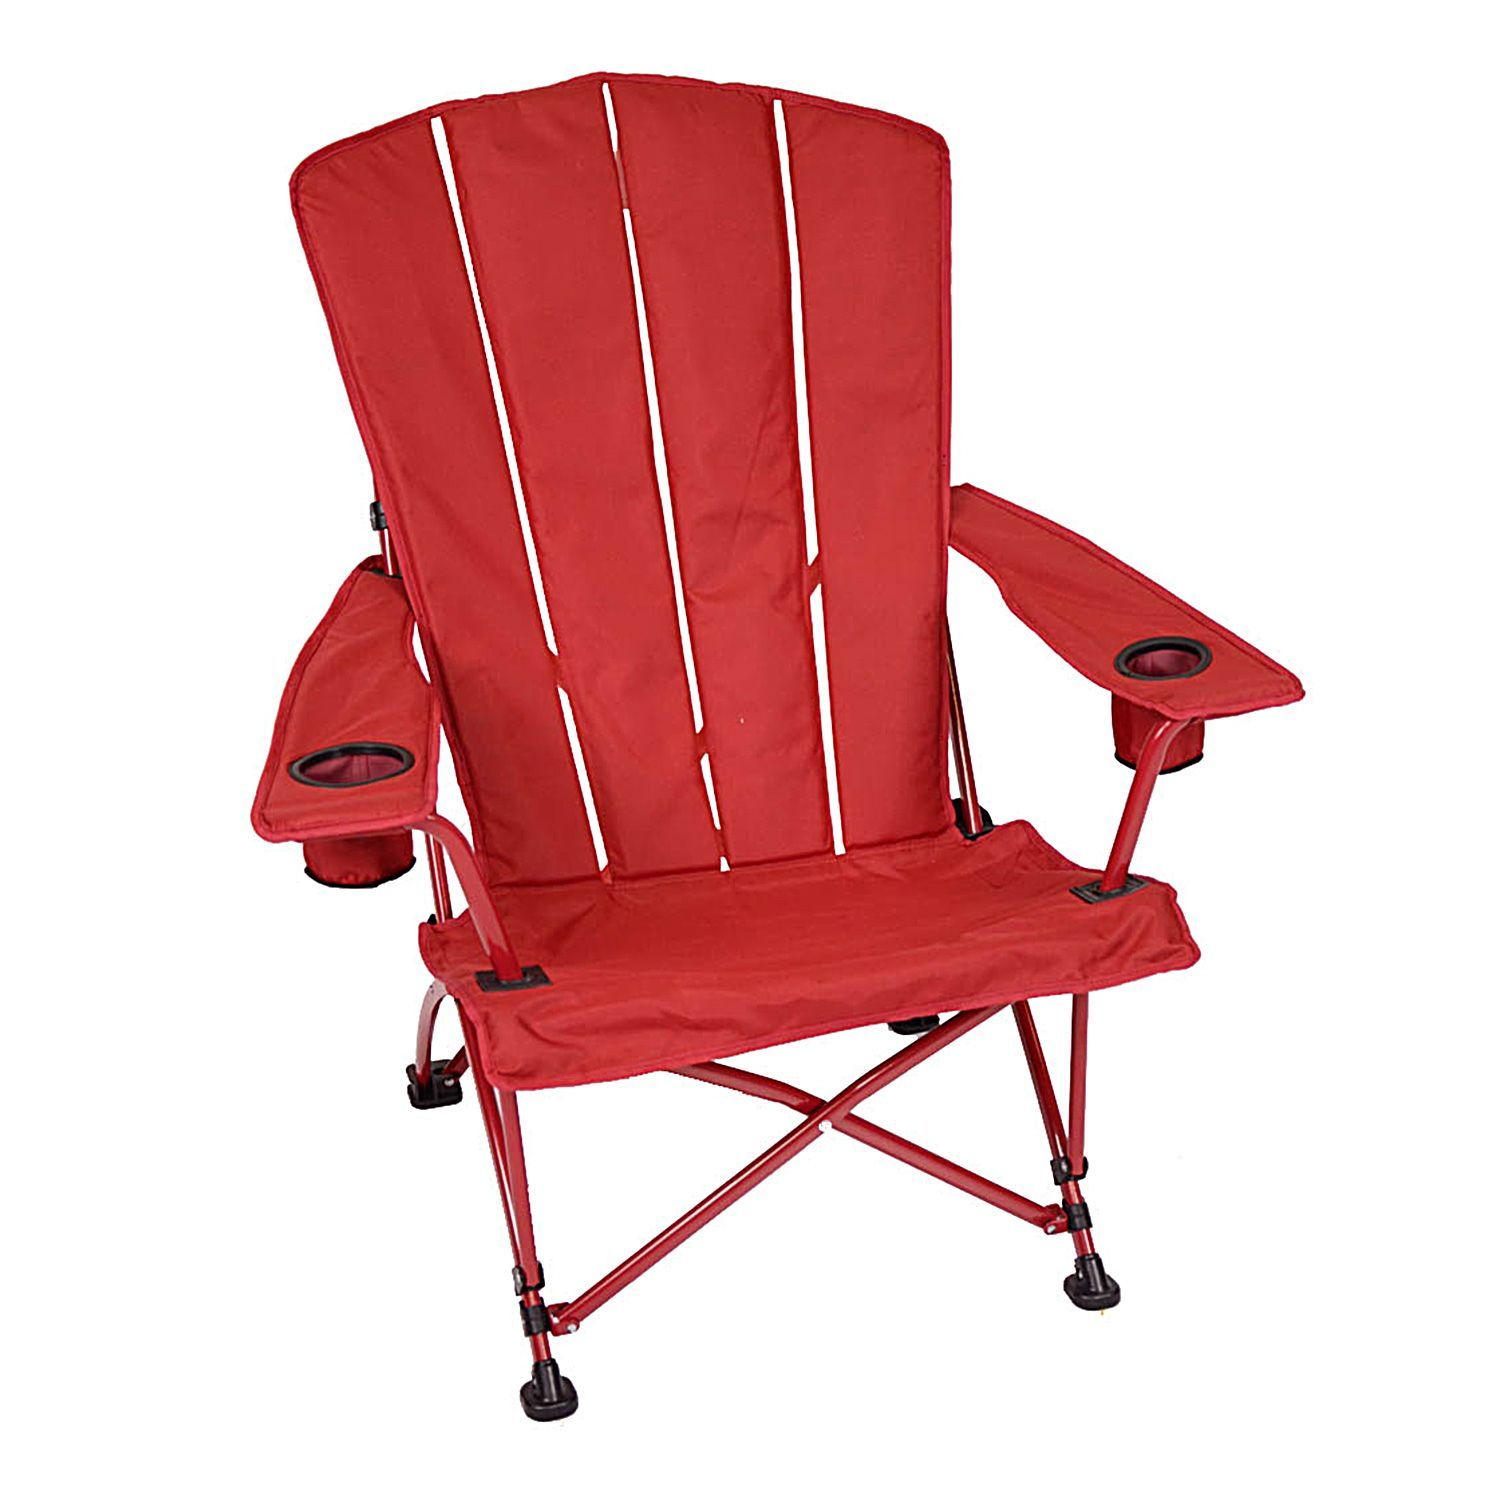 Foldable Adirondack Chair Red Sam s Club Most fortable camp chair